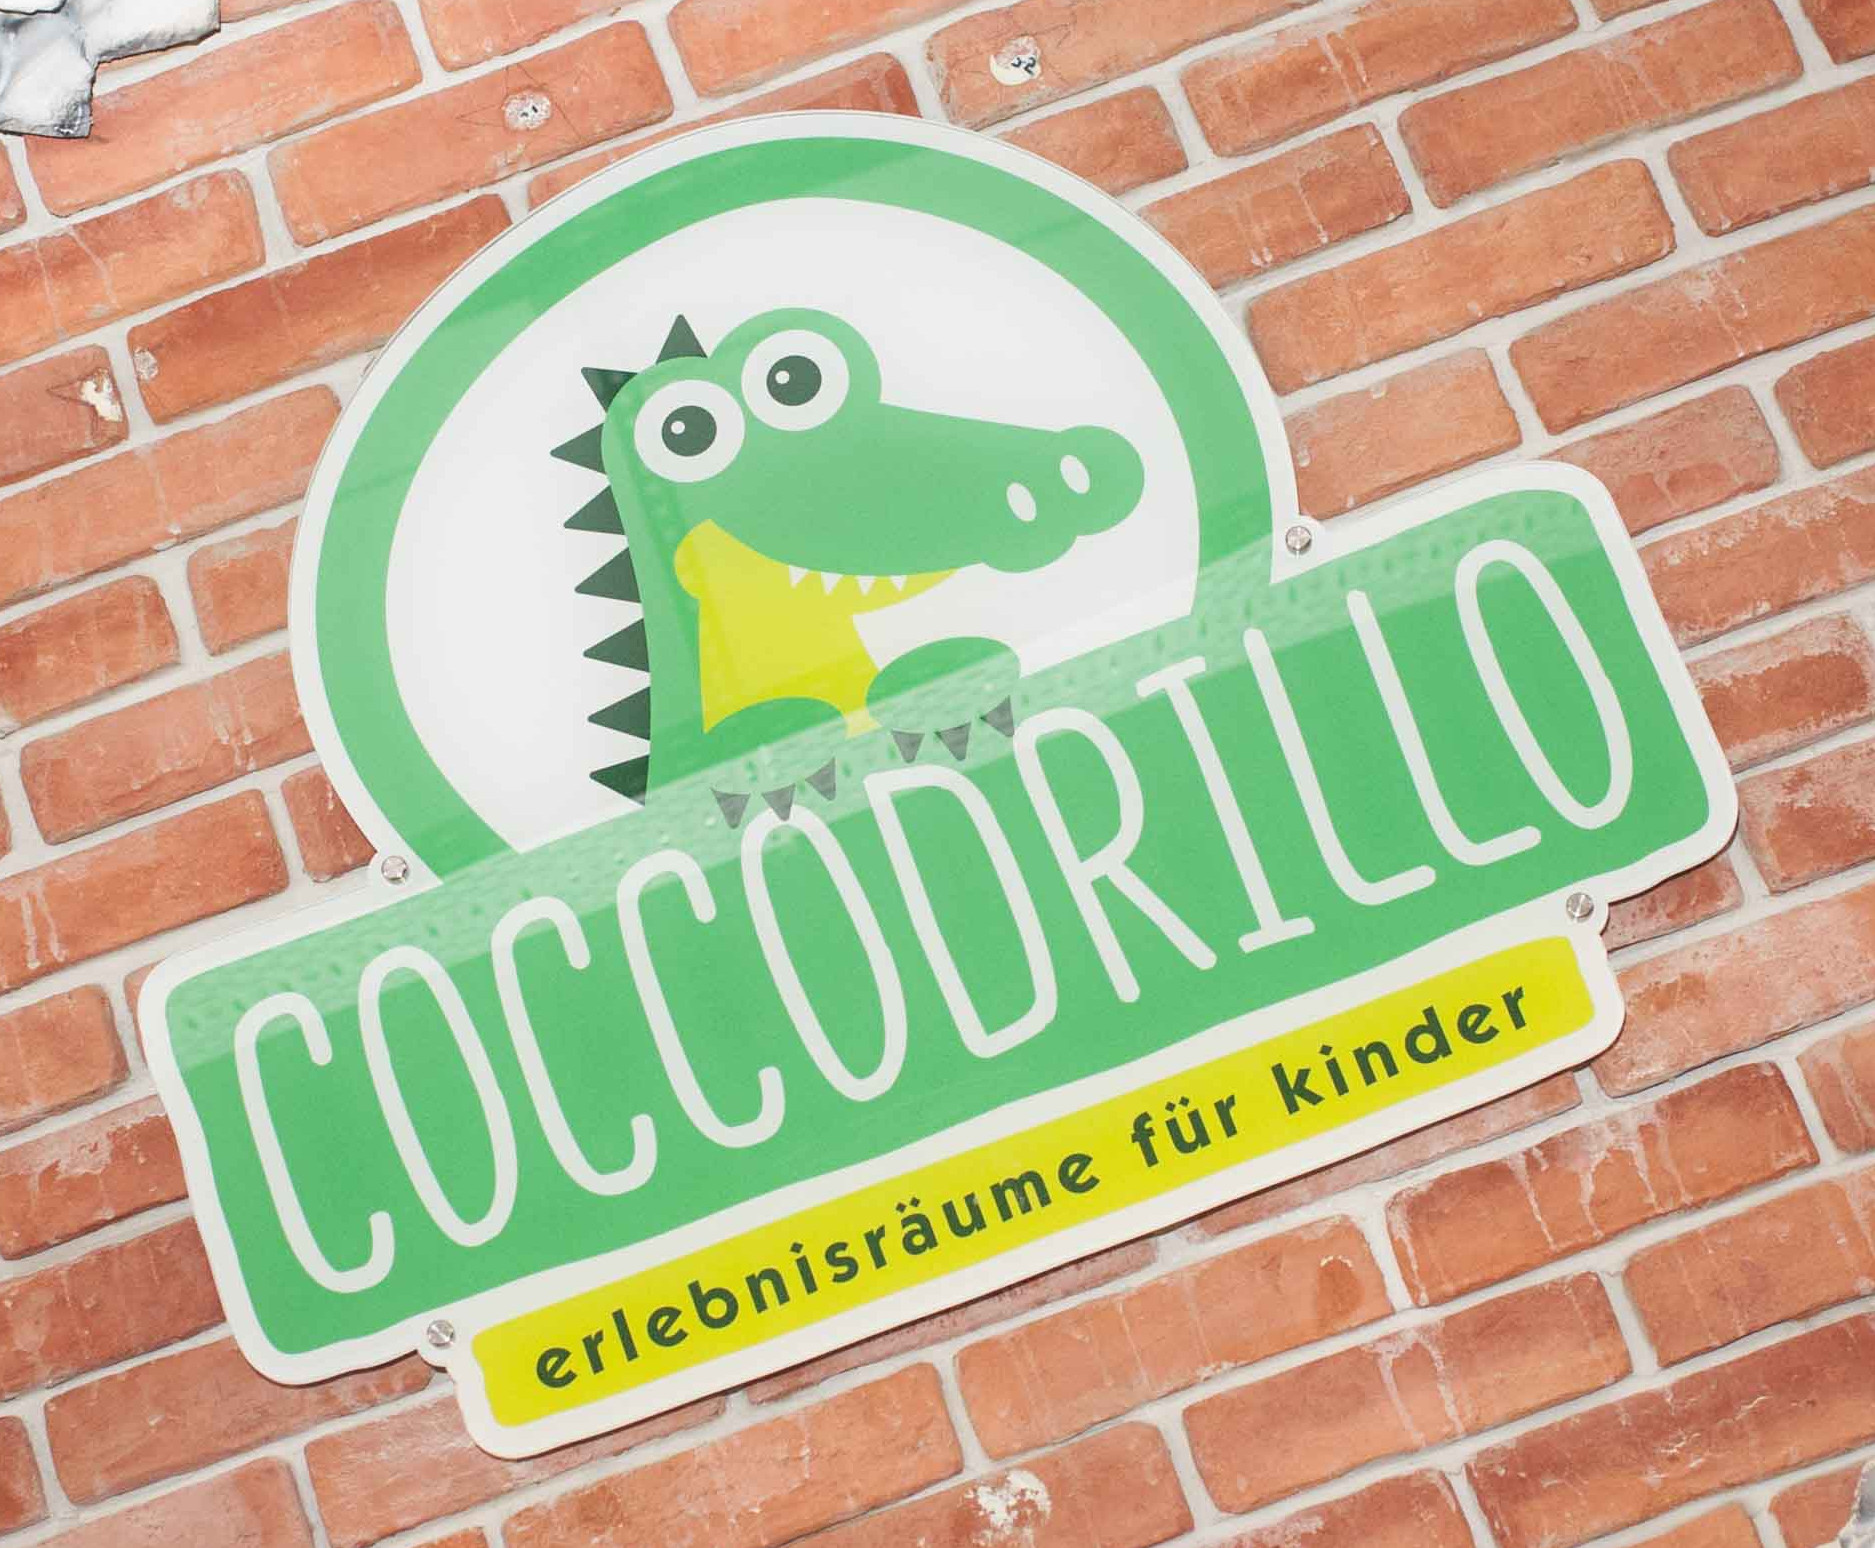 2018-01-05_Coccodrillo Party-verkleinert-4251